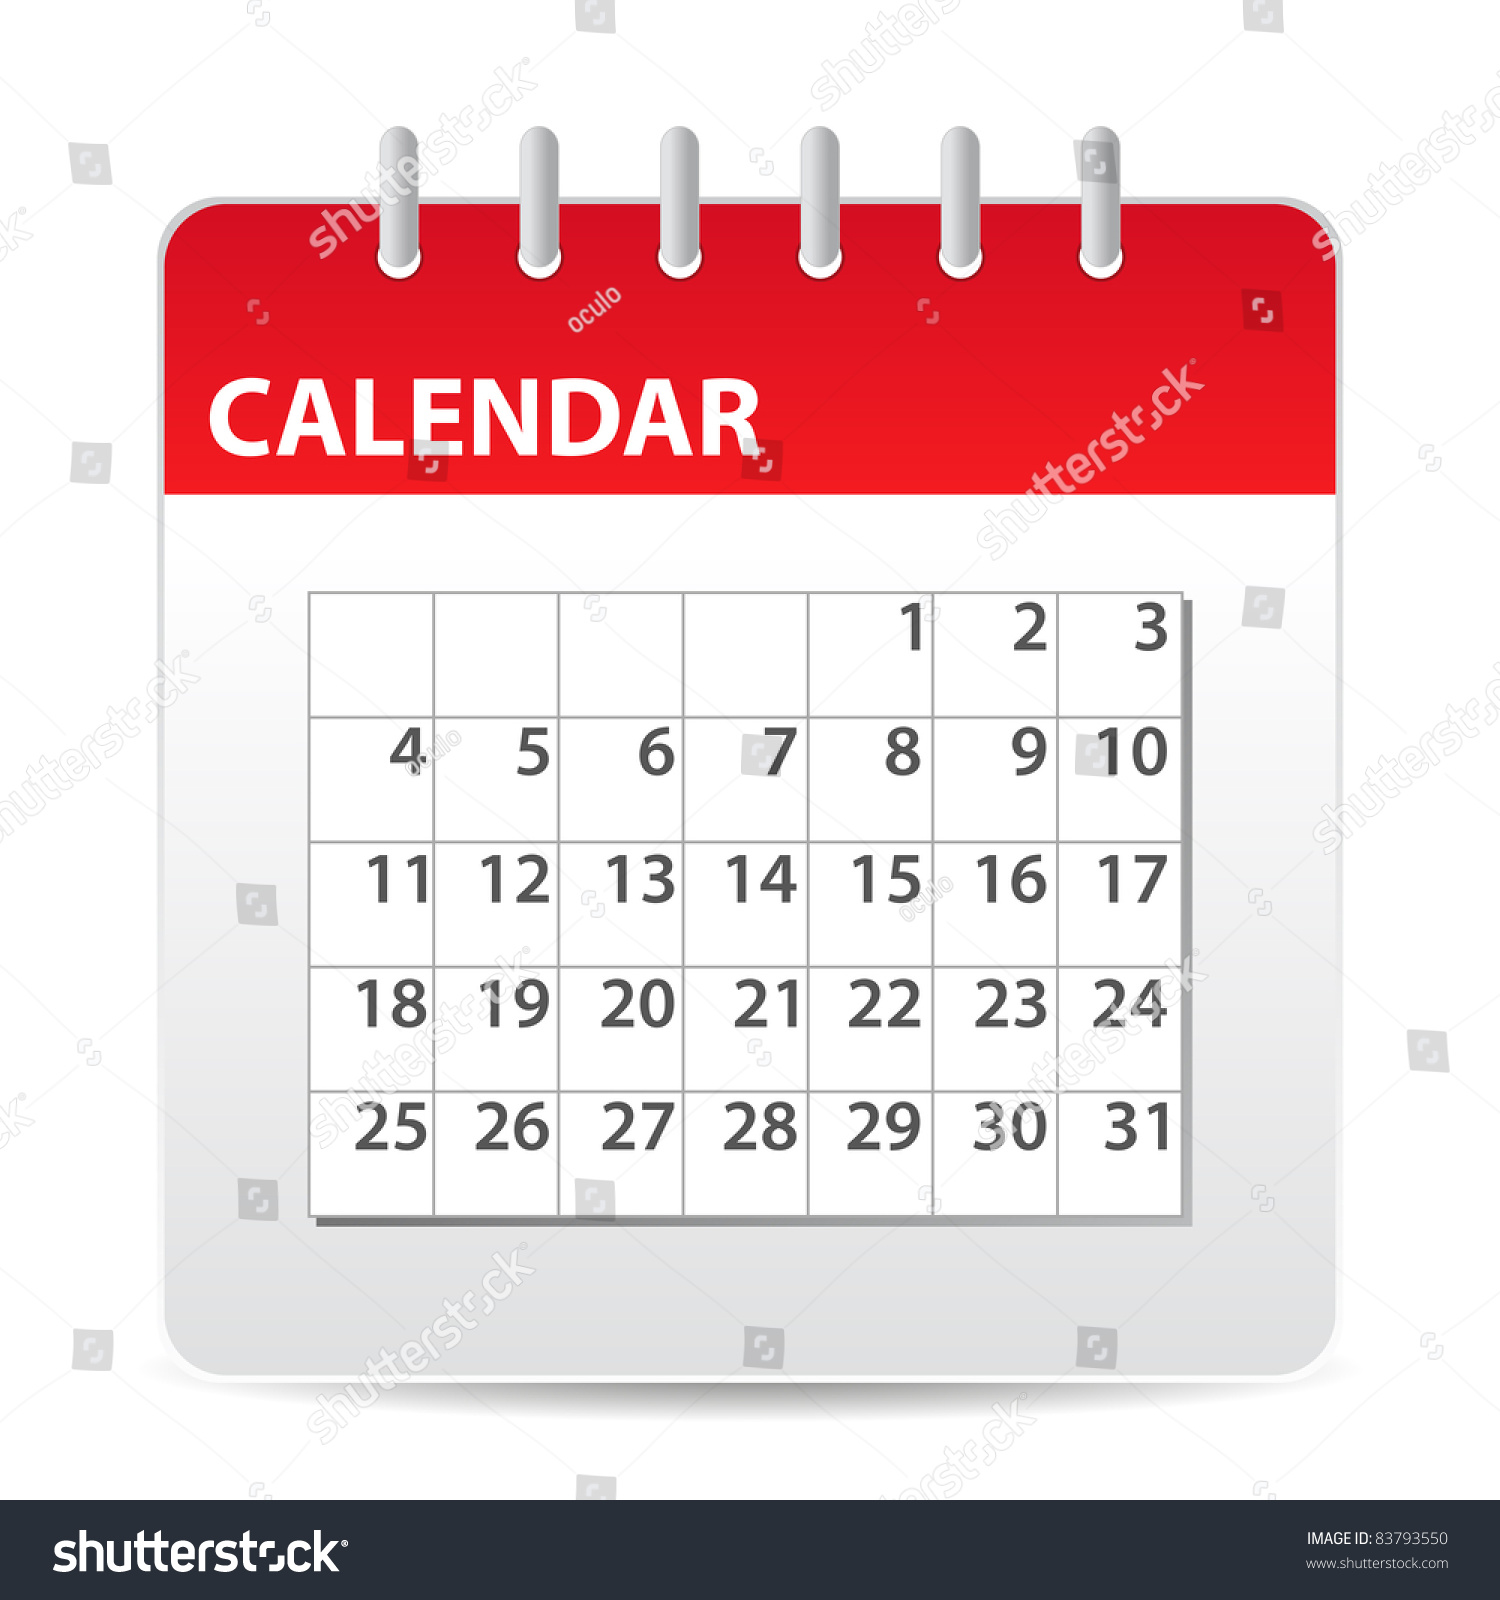 Calendar Red : Red calendar icon days month stock vector